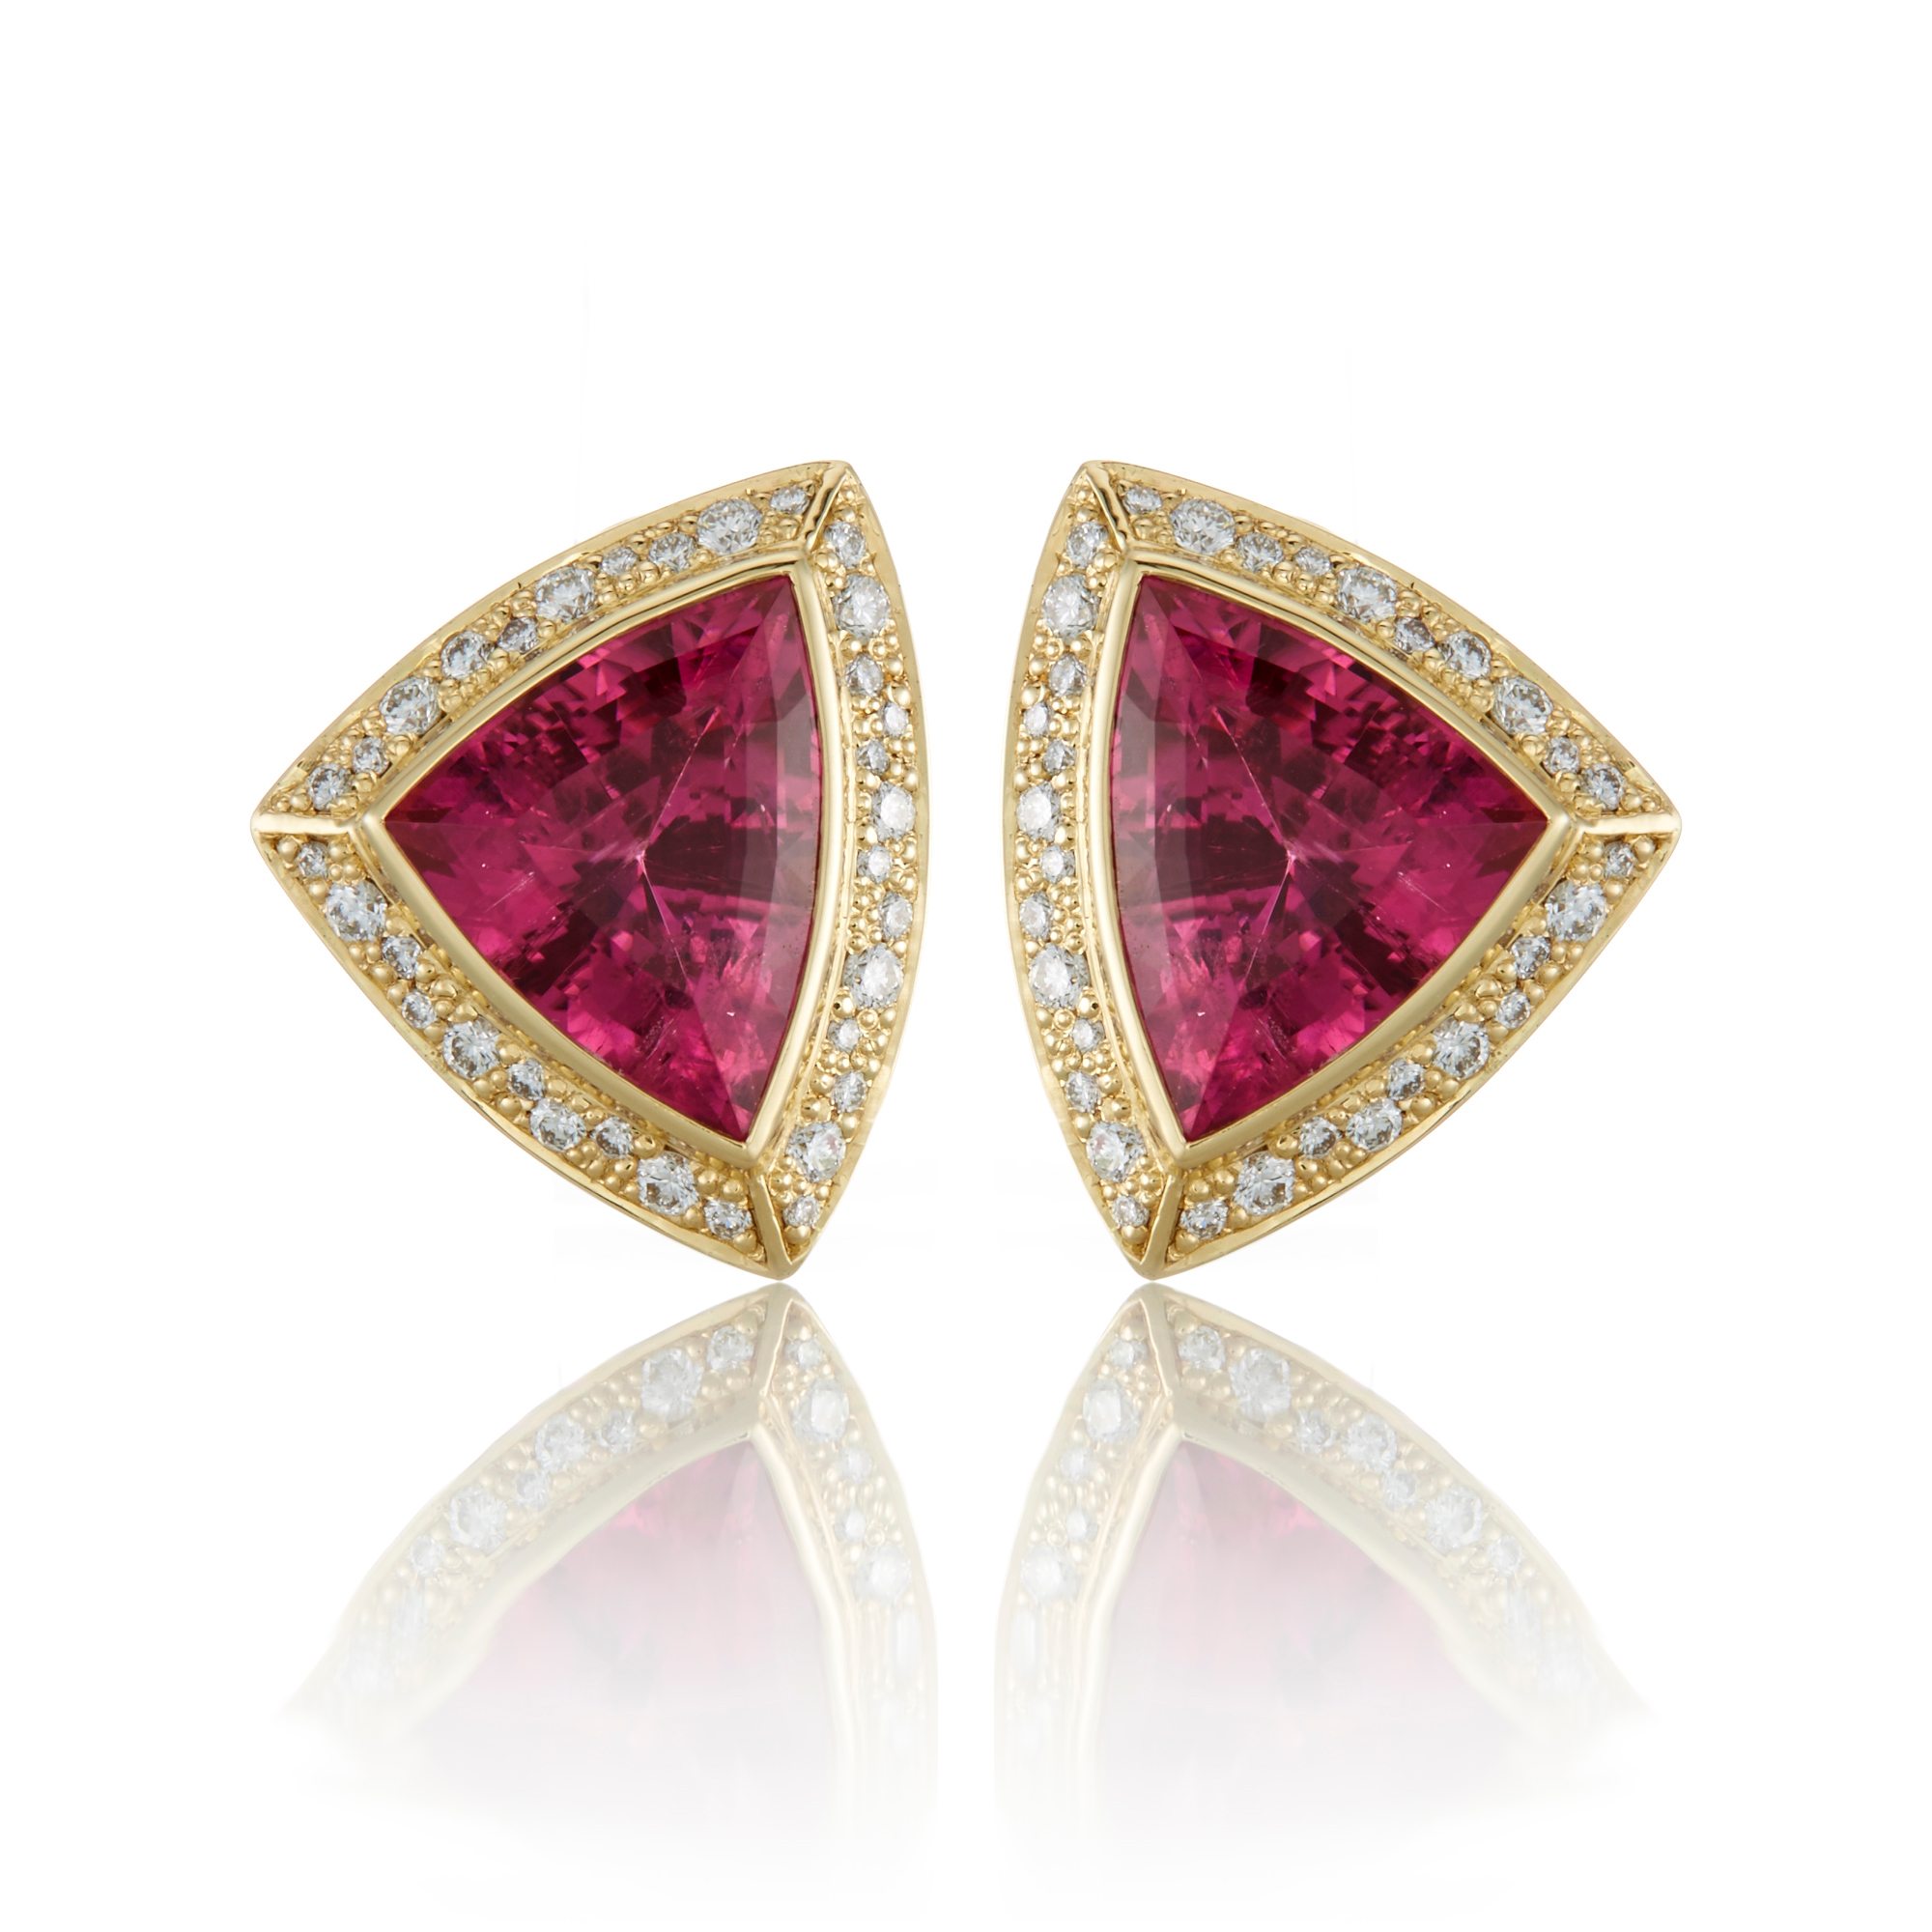 Gump's Pink Tourmaline and Diamond Shield Cut Earrings